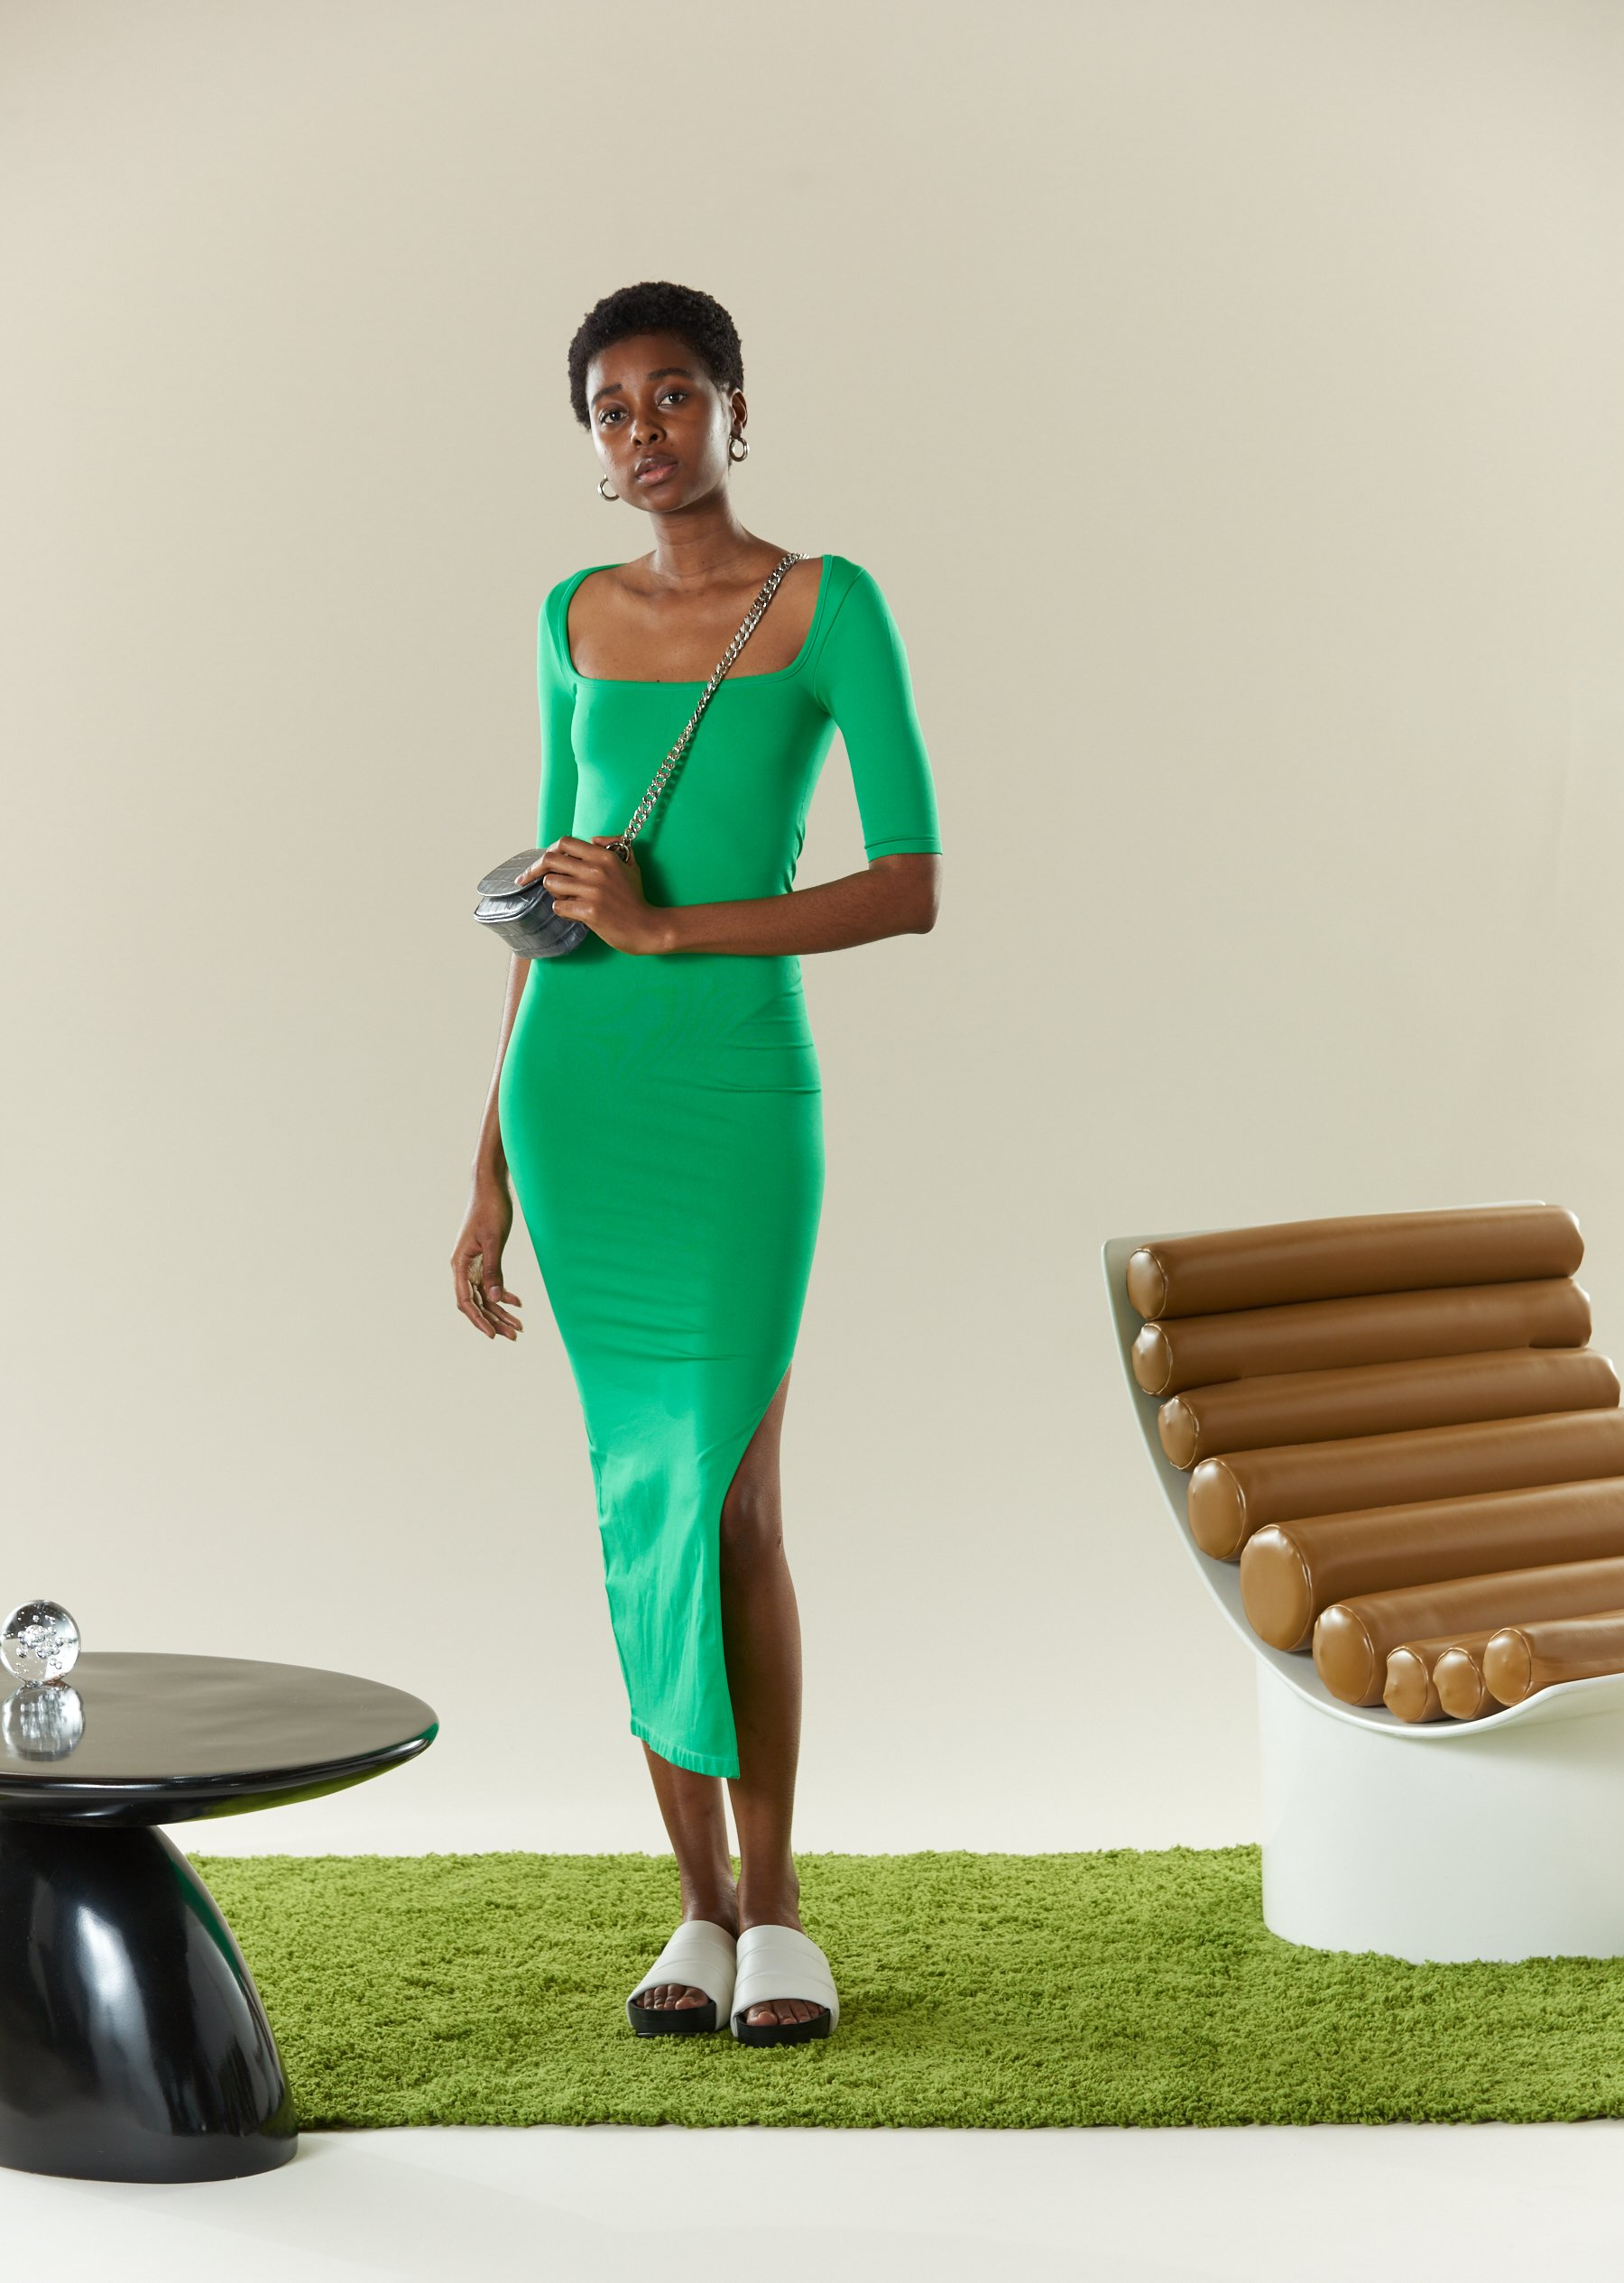 STRETCH Mies Dress in Jungle Green by Simon Miller - 5